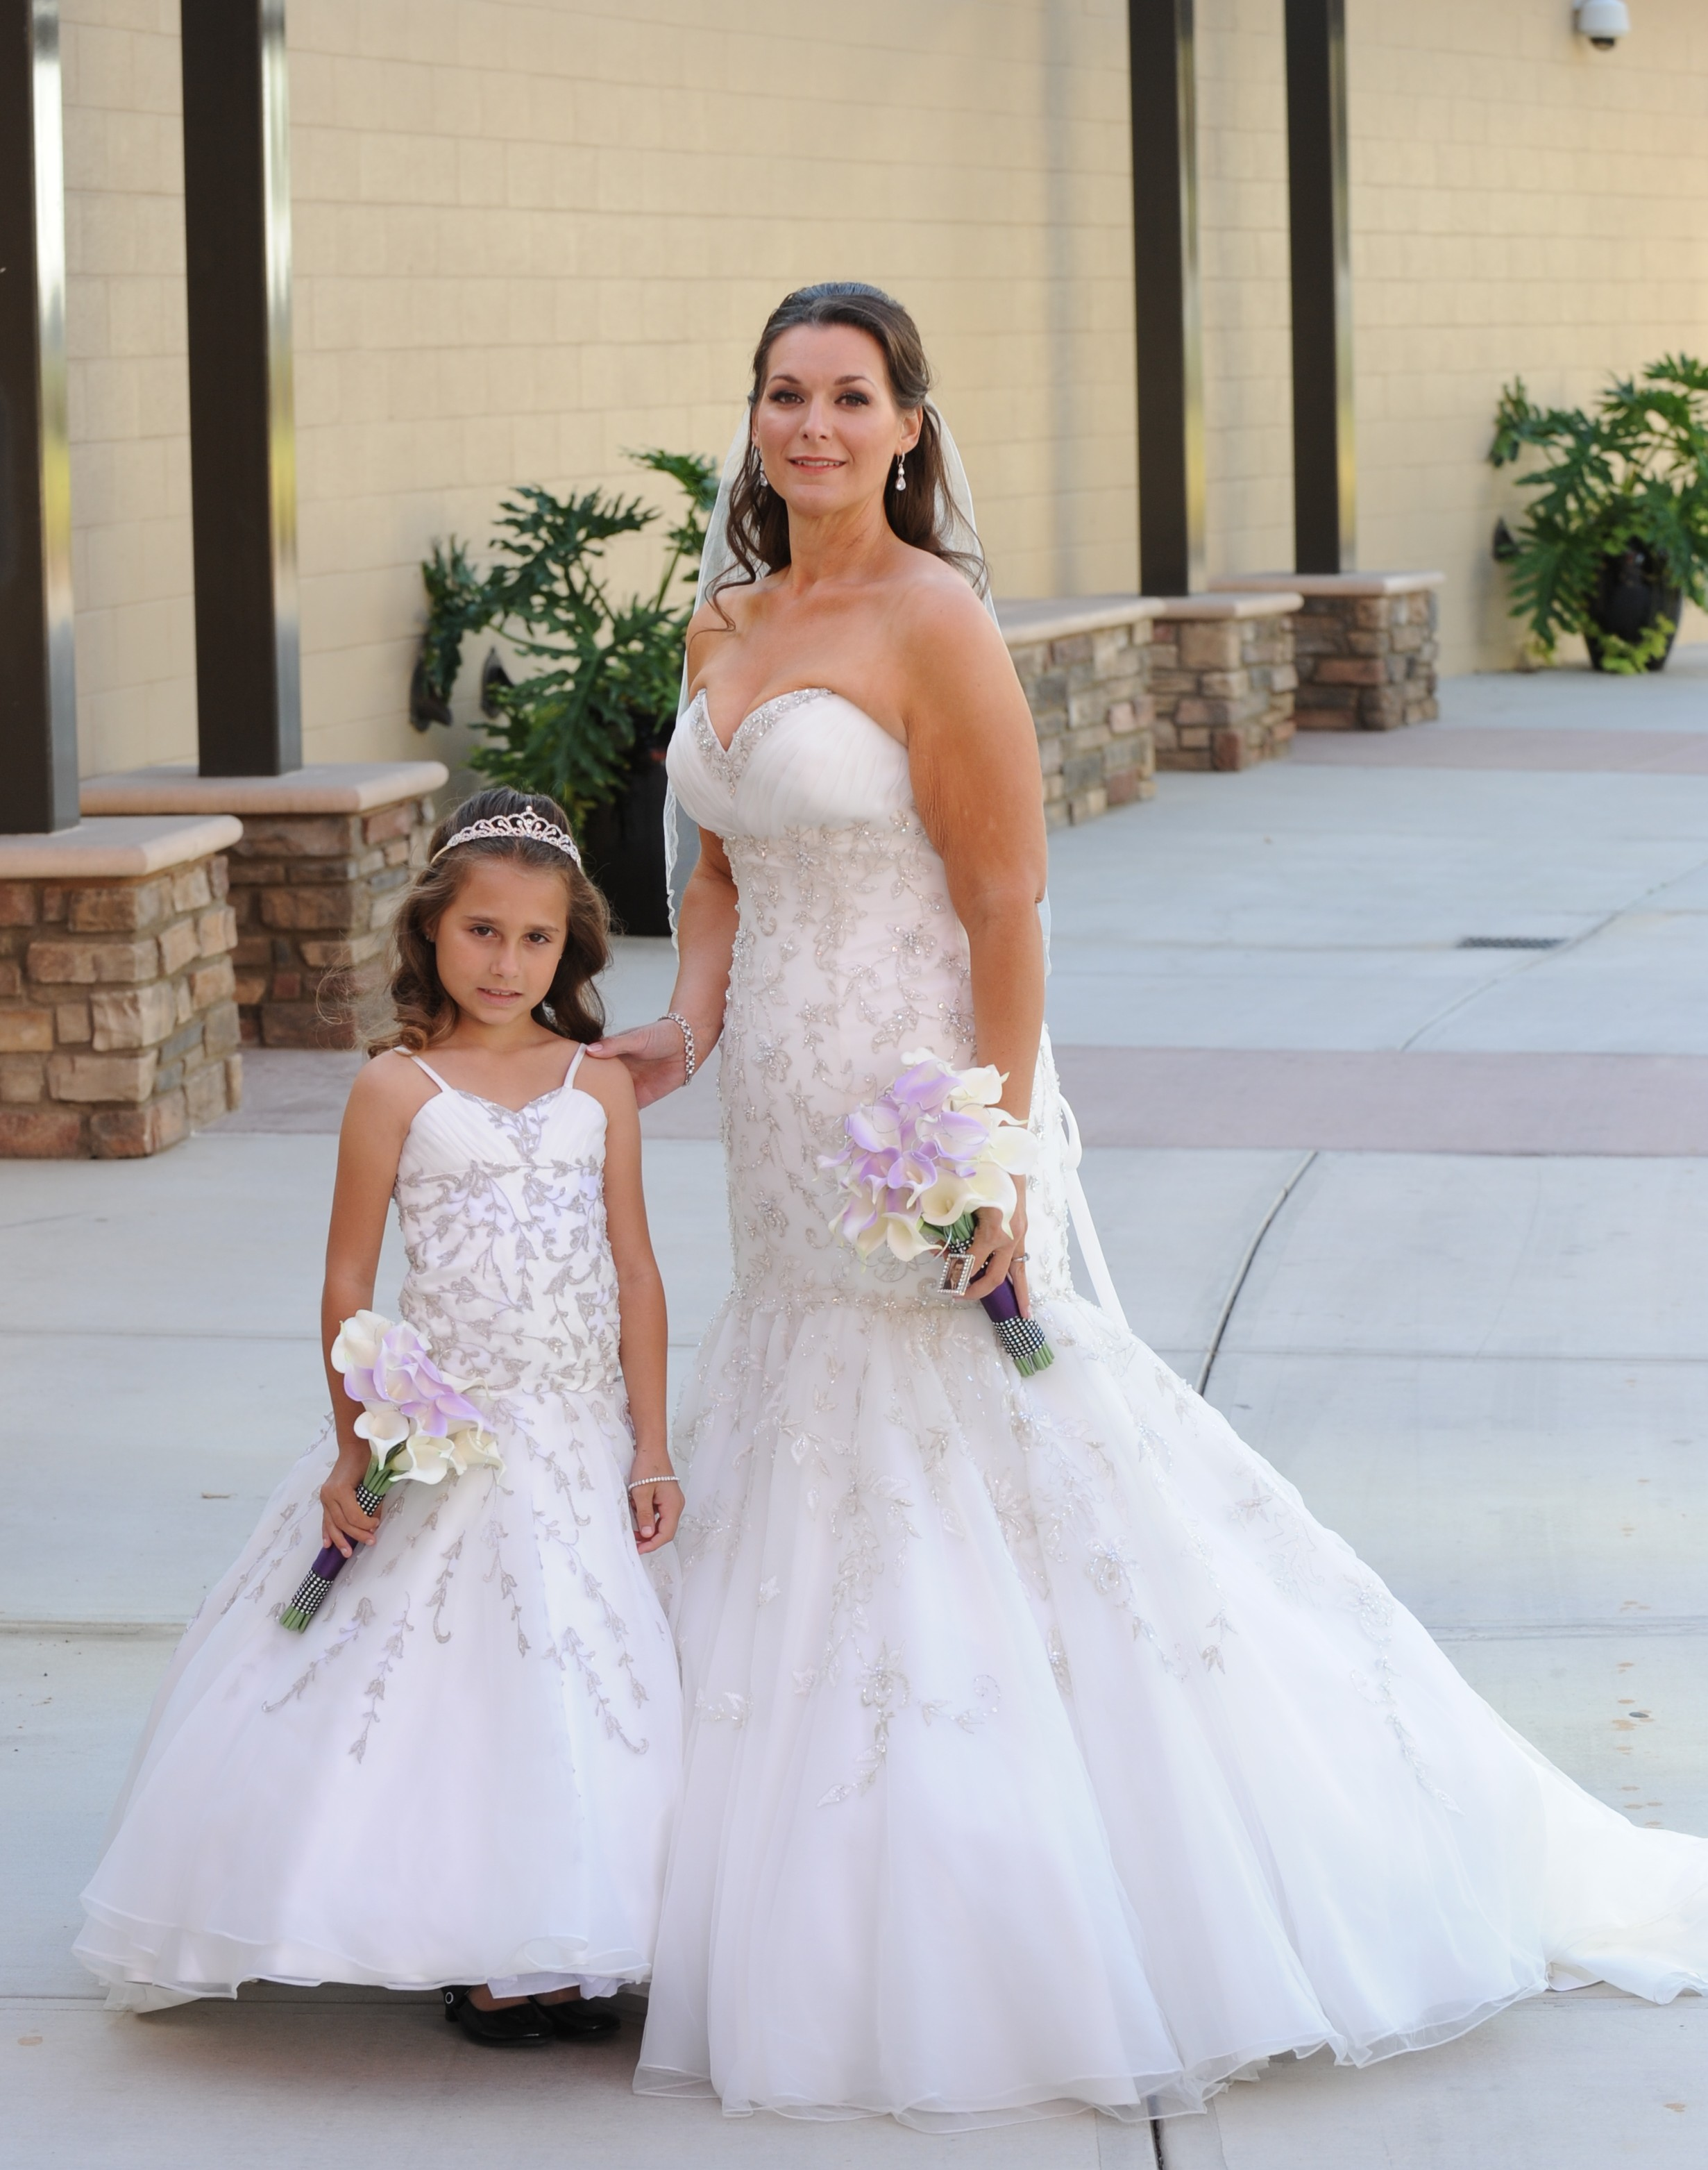 Bride and matching flower girl dresses mother and daughter matching wedding dresses ombrellifo Gallery